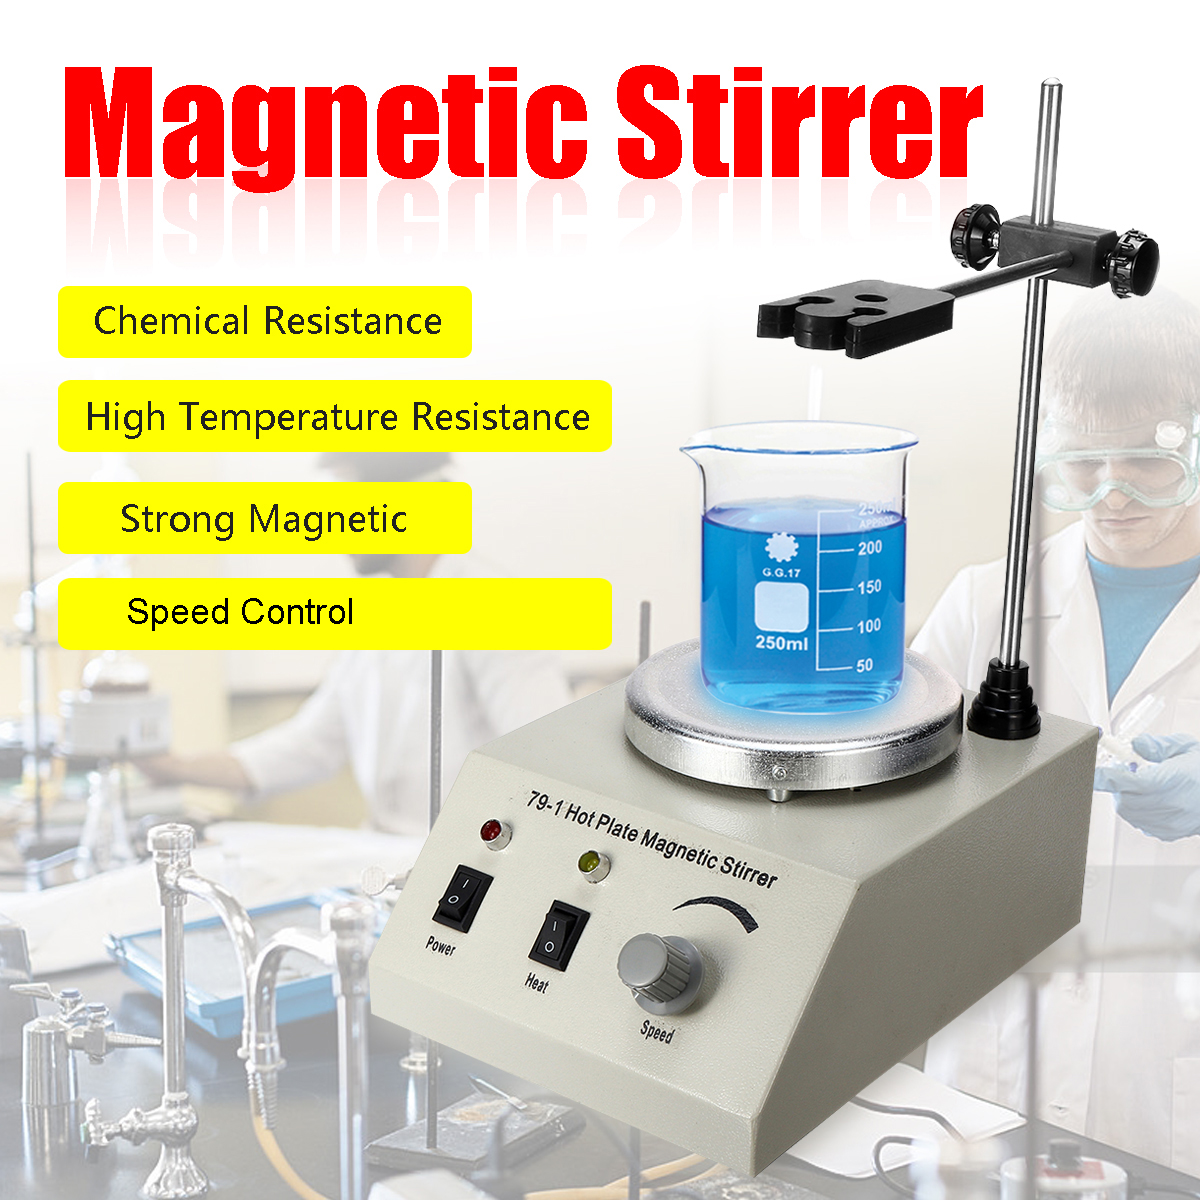 79-1 1000ml Hot Plate Magnetic Stirrer Lab Speed Variable Control Mixer 110/220V No Noise No Vibration US/EU/AU Plug Smooth Run